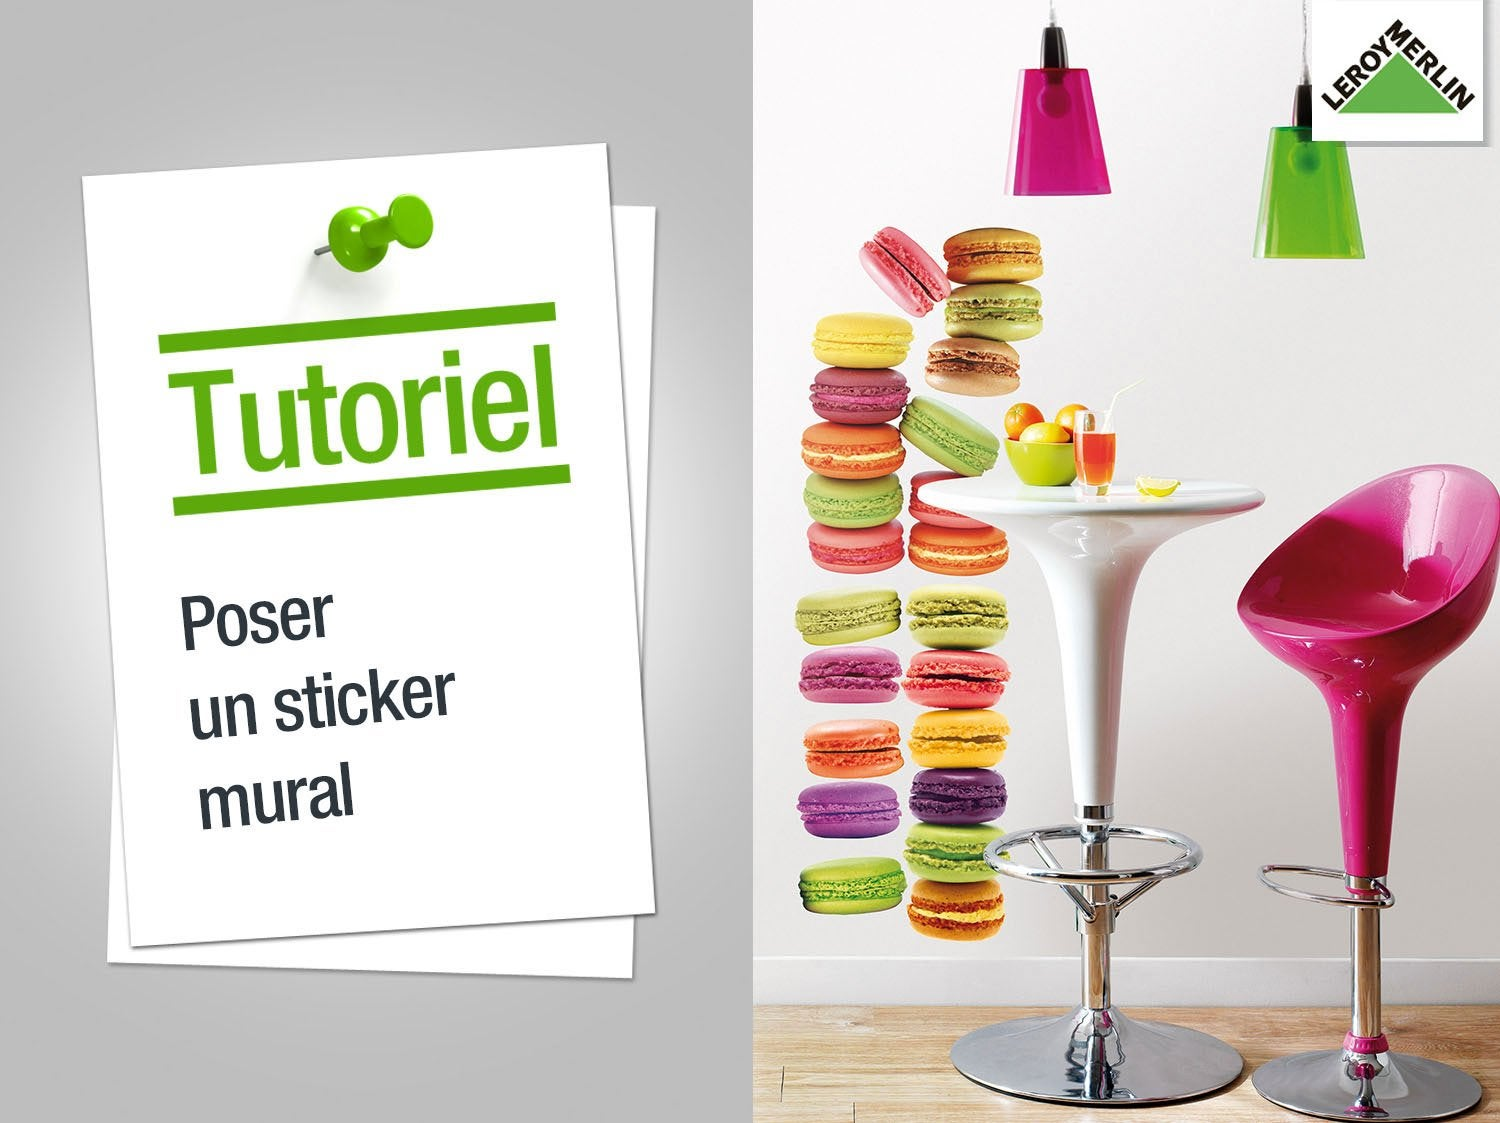 Comment poser un sticker mural ?